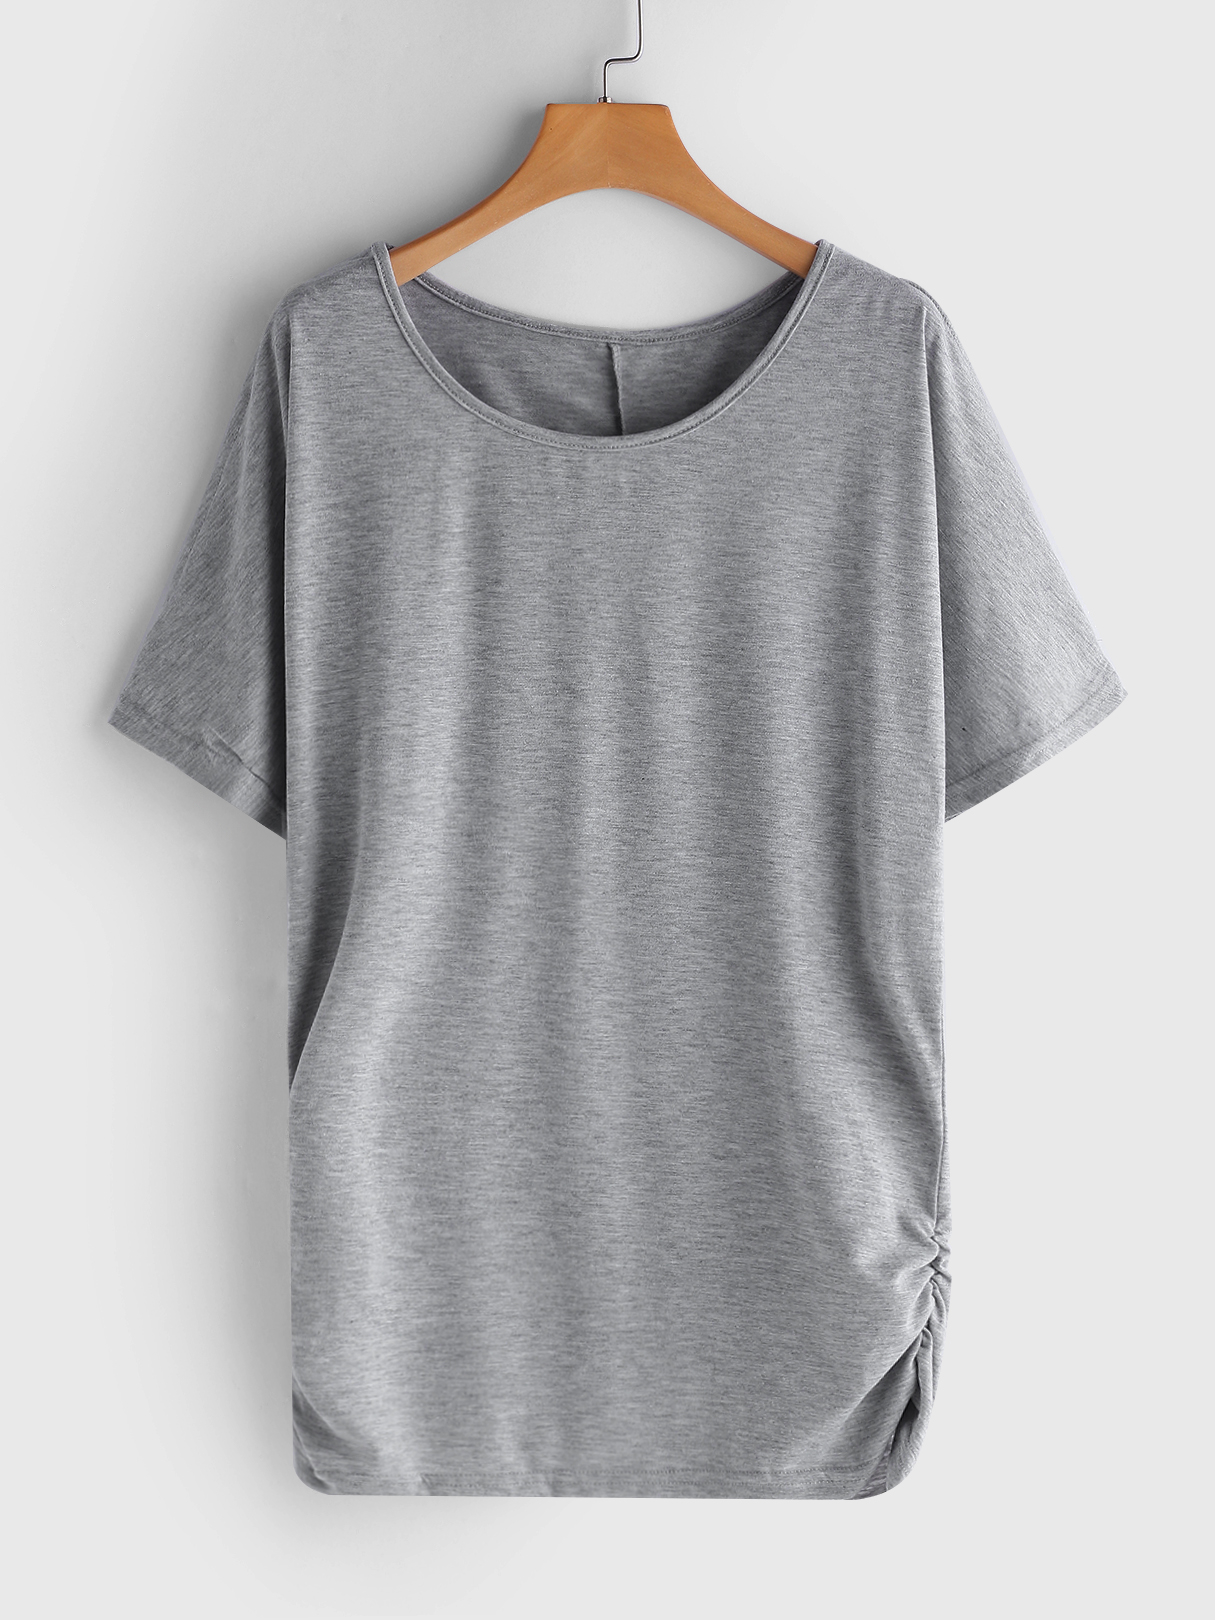 Grey Pleated Design Round Neck Bat Sleeves T-shirts ssd накопитель sandisk x600 sd9sn8w 512g 1122 512гб m 2 2280 sata iii